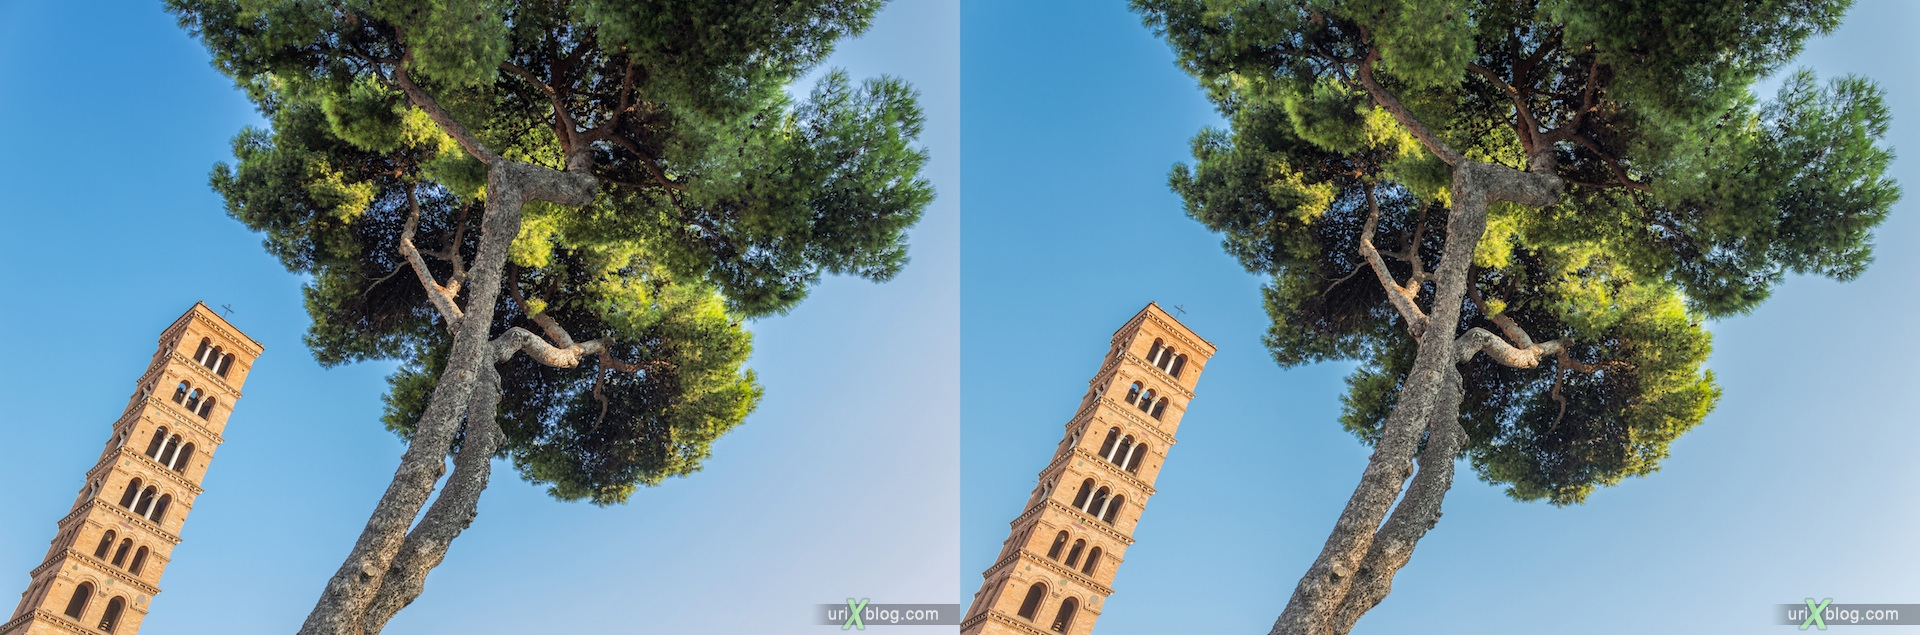 2012, Church of Santa Maria in Cosmedin, tree, sky, Forum Boarium, 3D, stereo pair, cross-eyed, crossview, cross view stereo pair